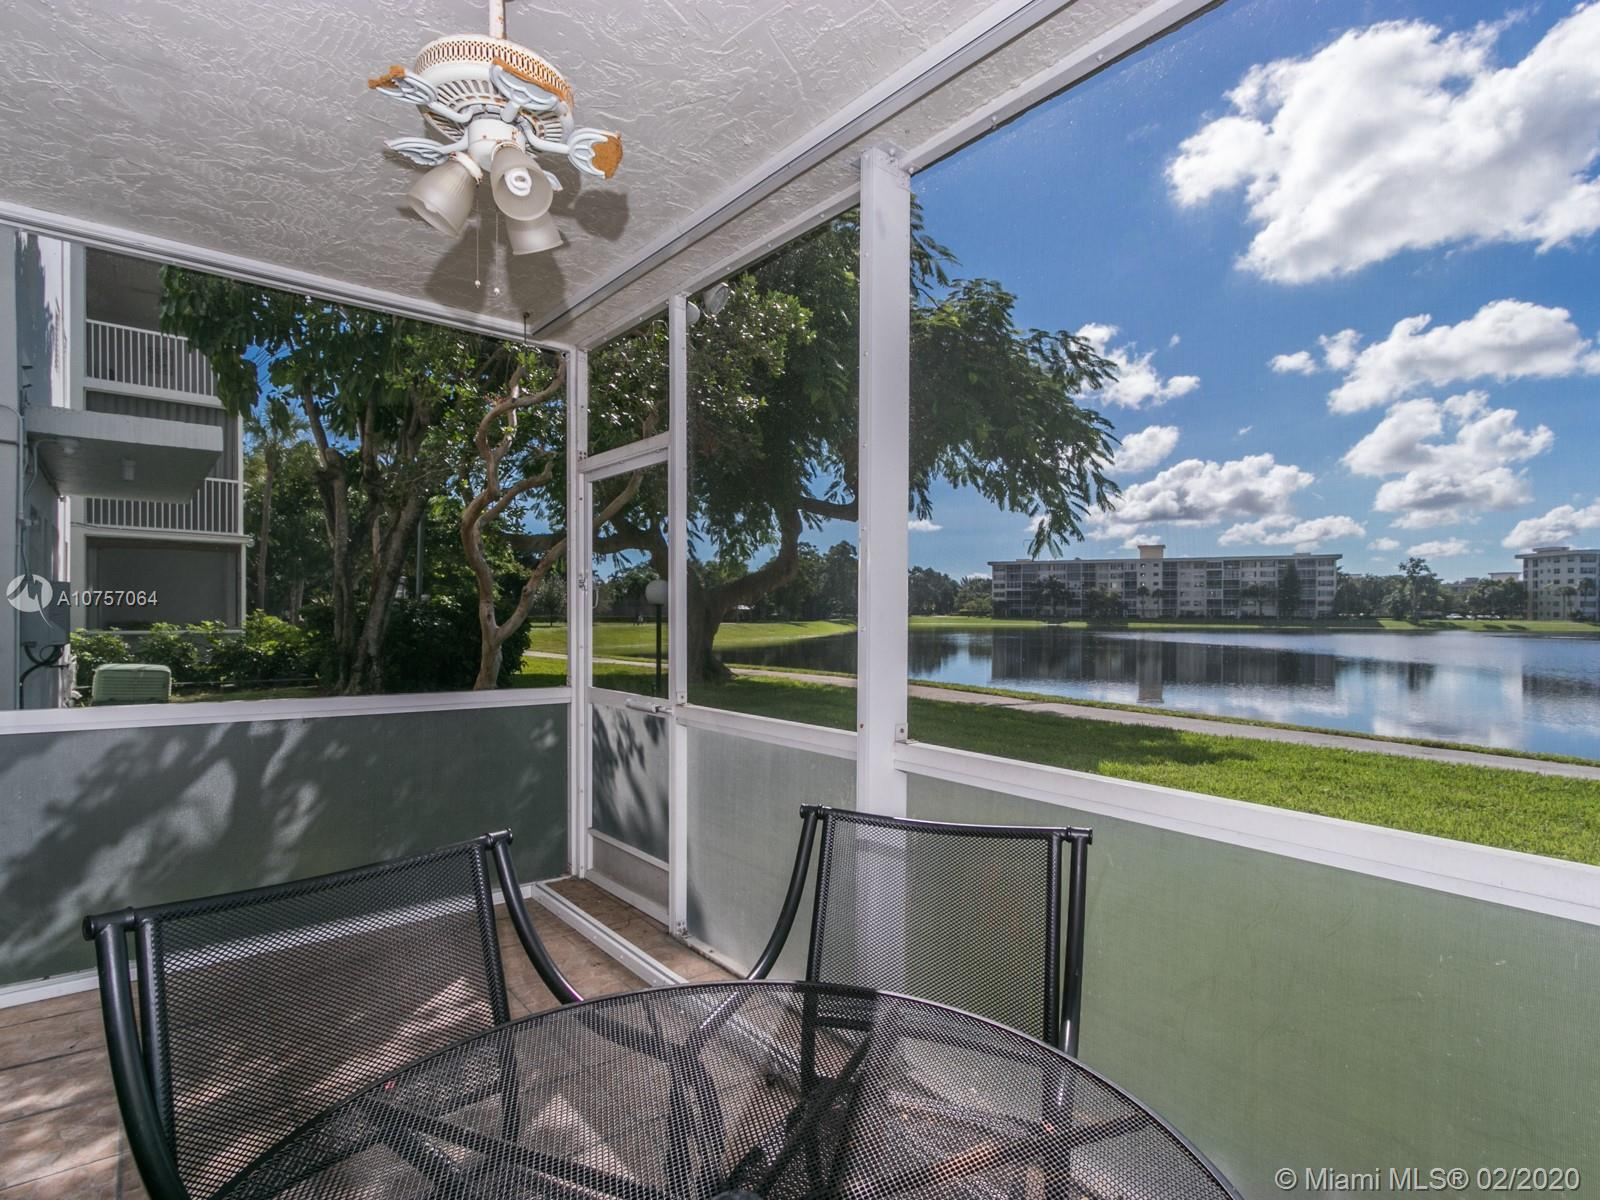 Beautiful 1st floor condo with screened in patio and lake view! The unit has impact windows and accordion shutters to close off the balcony. The kitchen has updated appliances and granite countertops with a kitchen pass through. New AC and new washer/dryer. Both bathrooms are completely updated as well. Palm Aire is directly across from the Isle Casino, close to shopping, restaurants and more!